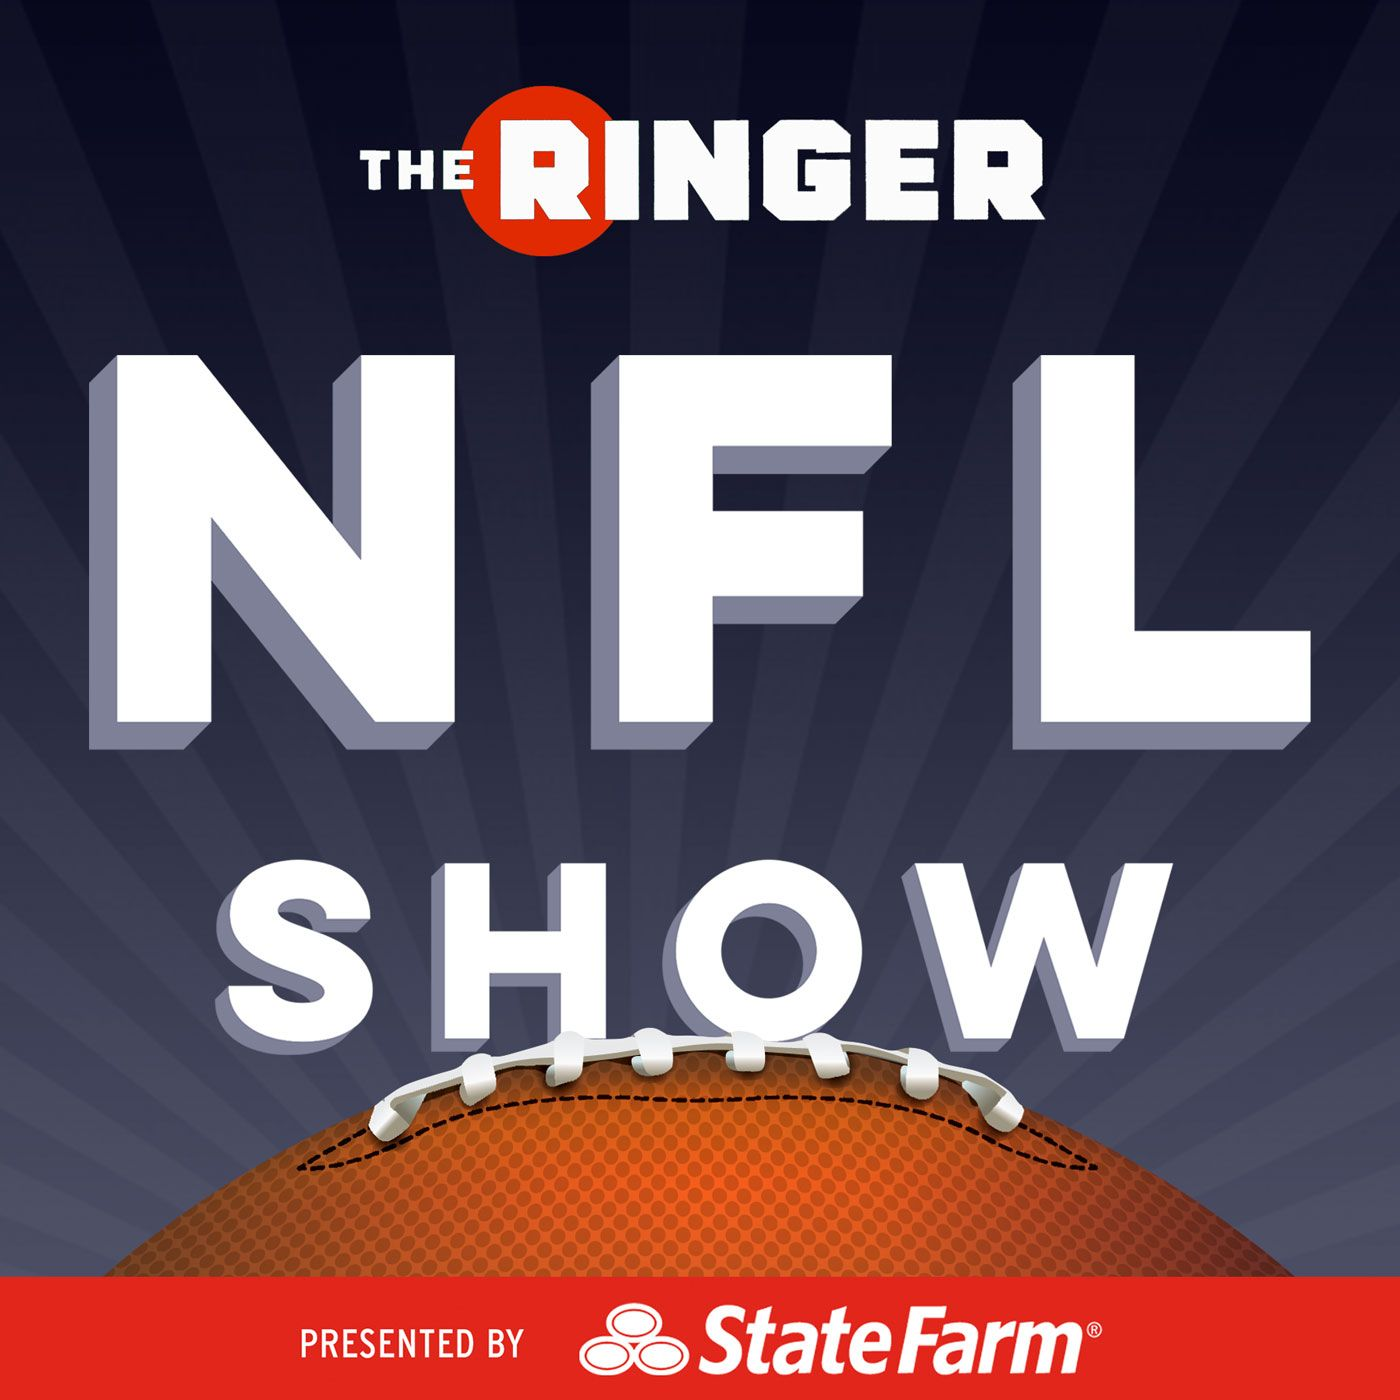 Lamar vs. Mahomes, Brees's Slow Start With Terez Paylor, and Take Mulligans | The Ringer NFL Show